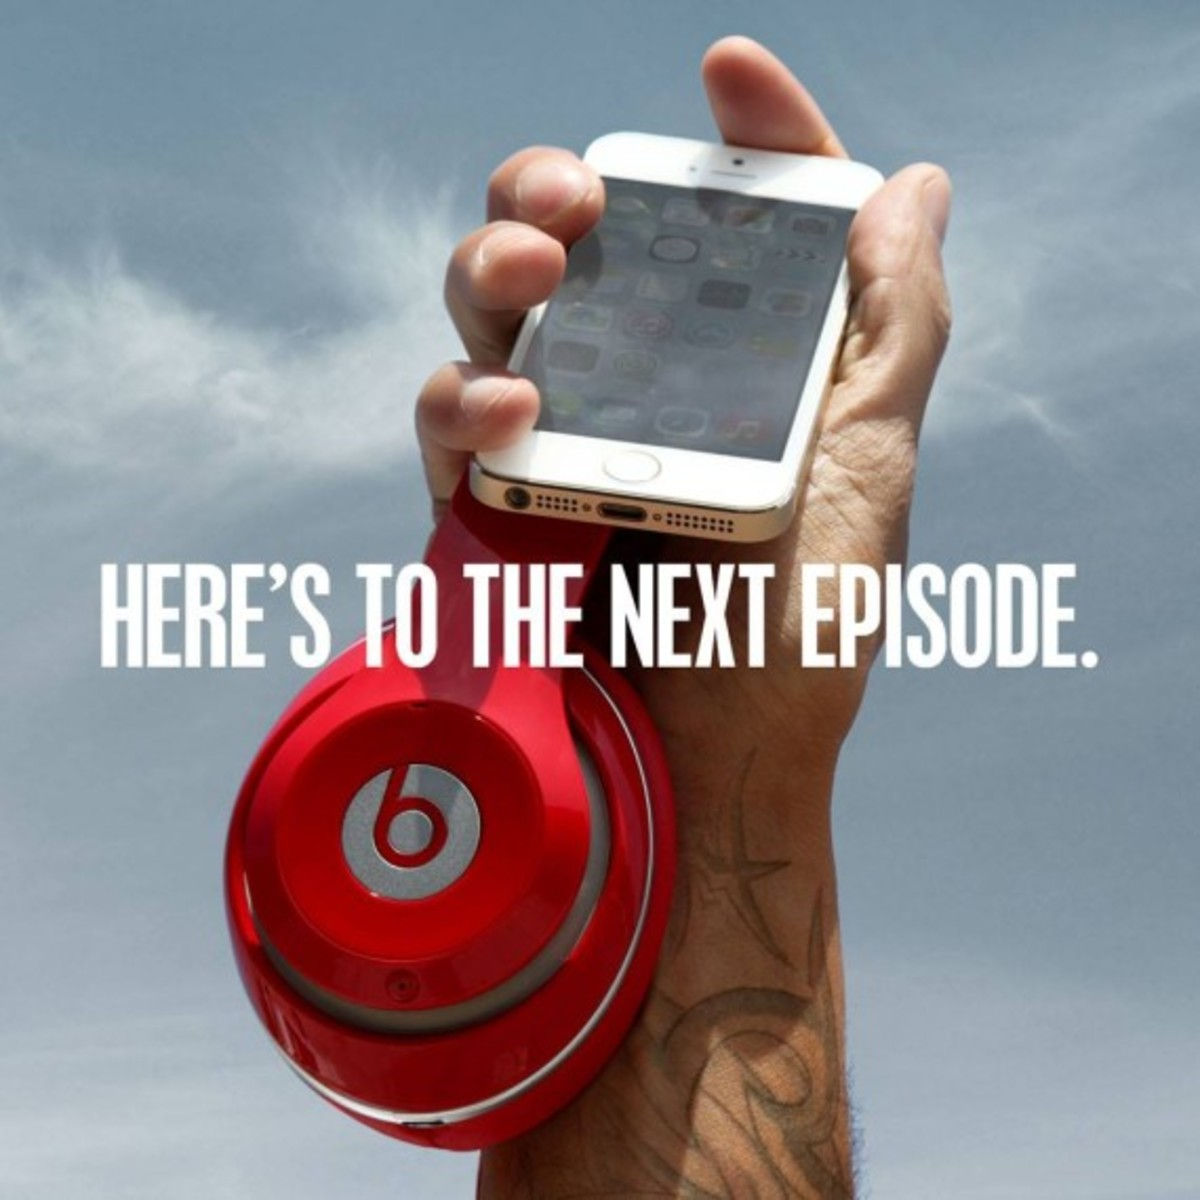 Apple Buys Beats By Dr. Dre for $3 Billion - Officially Announced - 0